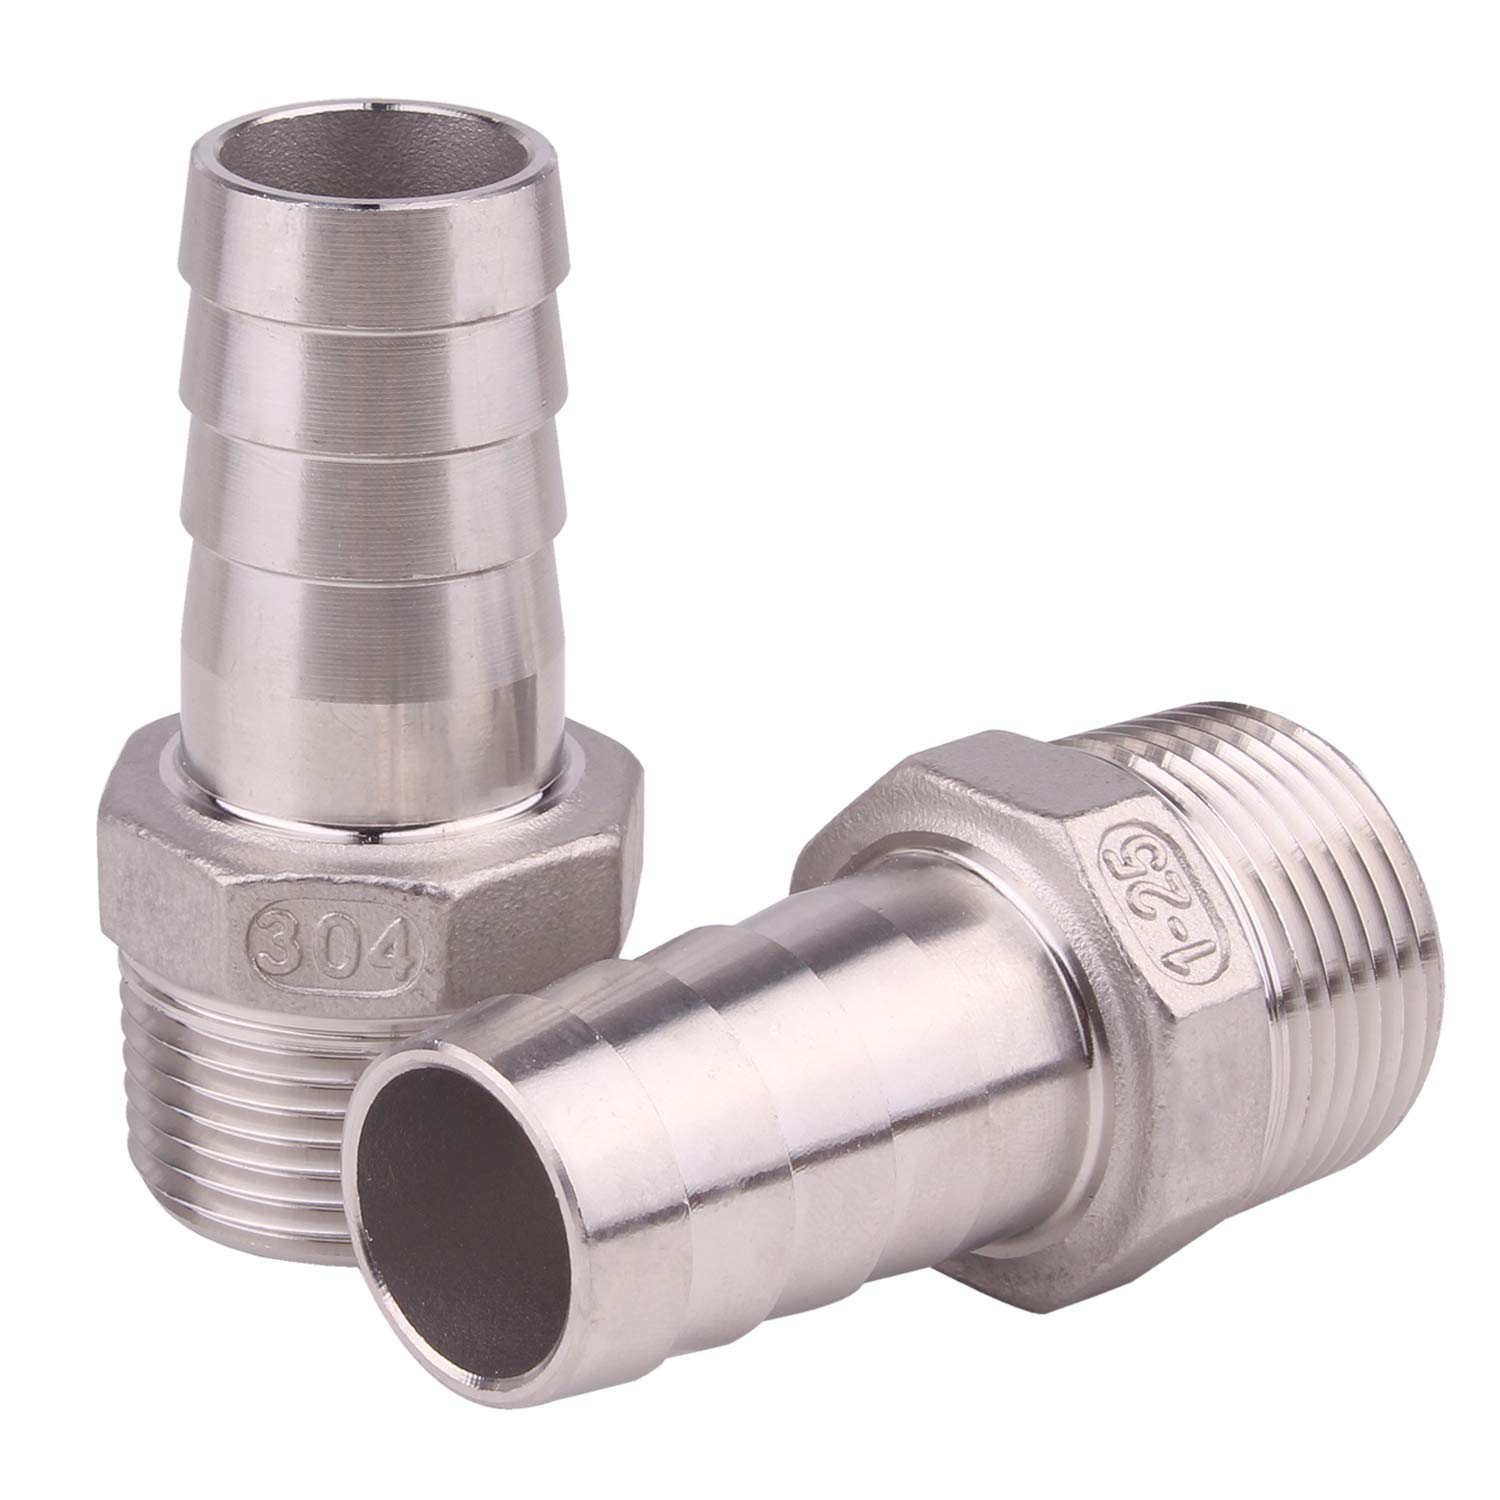 Dernord 1'' Barbed Hose x 1'' NPT Male - Home Brew Fitting 304 Stainless Steel Pack of 2 (1'' Barb to 1'' NPT fitting)